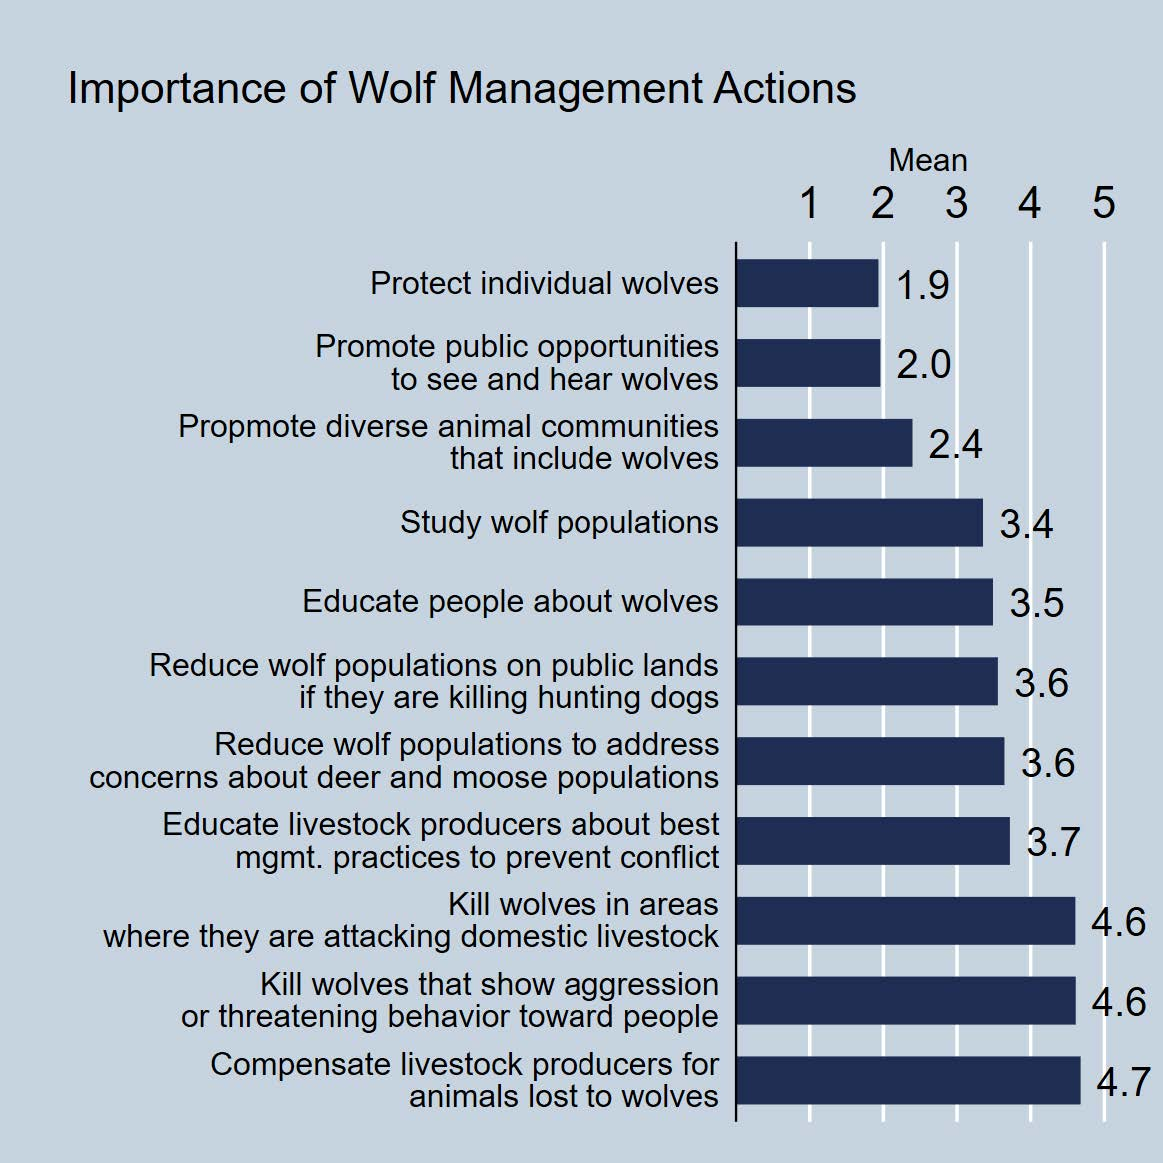 Livestock producers' attitudes about wolf managagement topics.